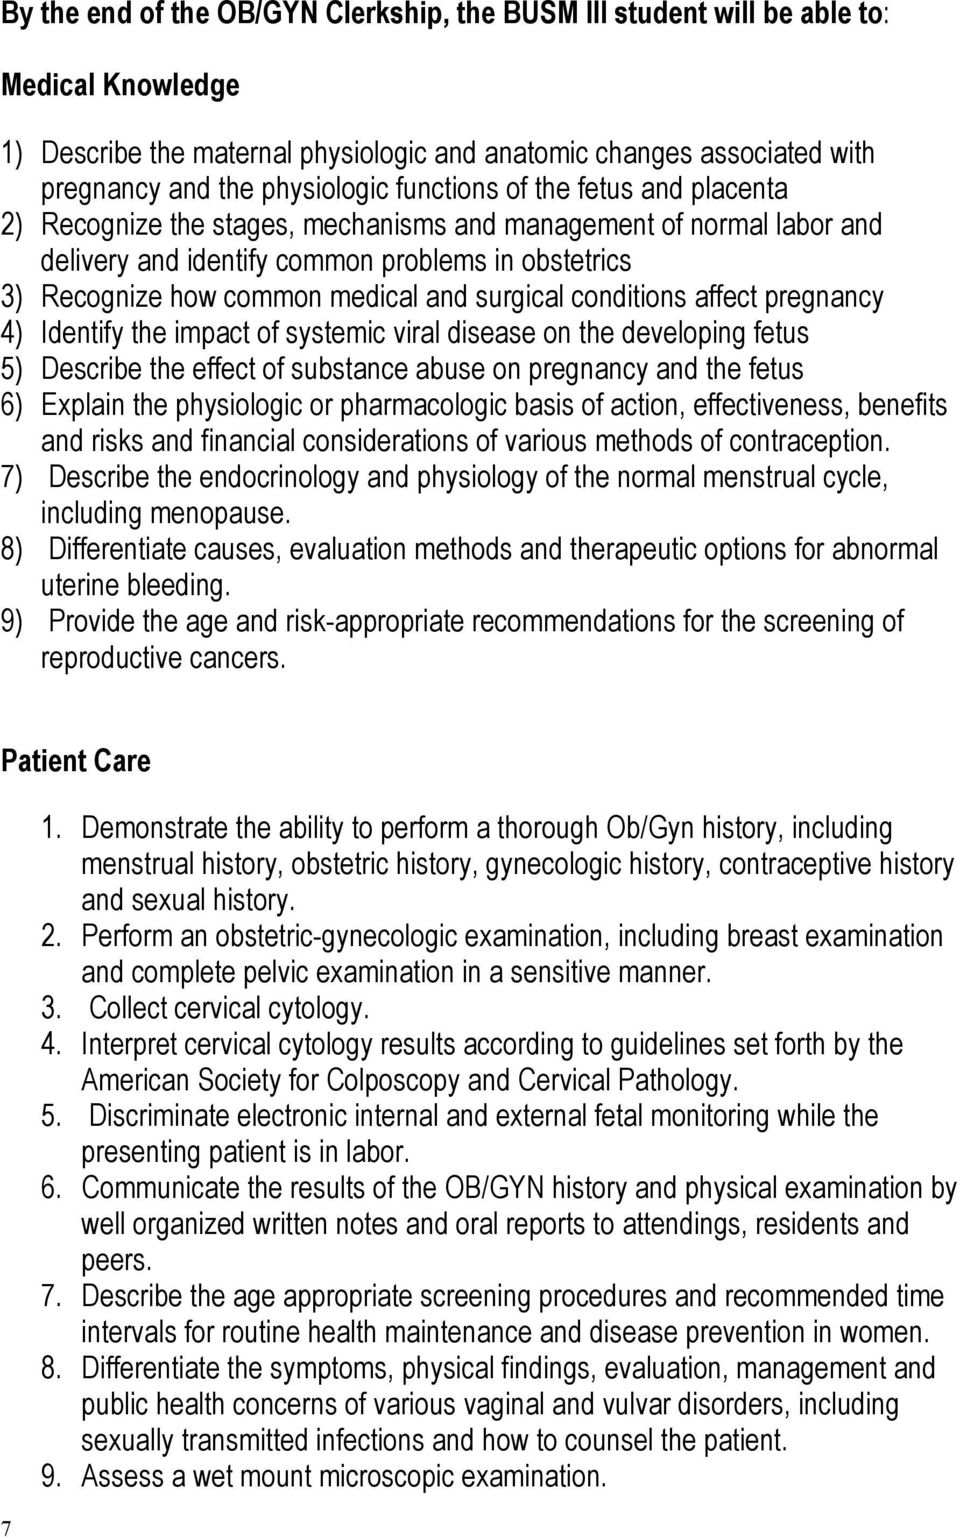 Pocket Guide MSIII Clerkship Obstetrics and Gynecology - PDF